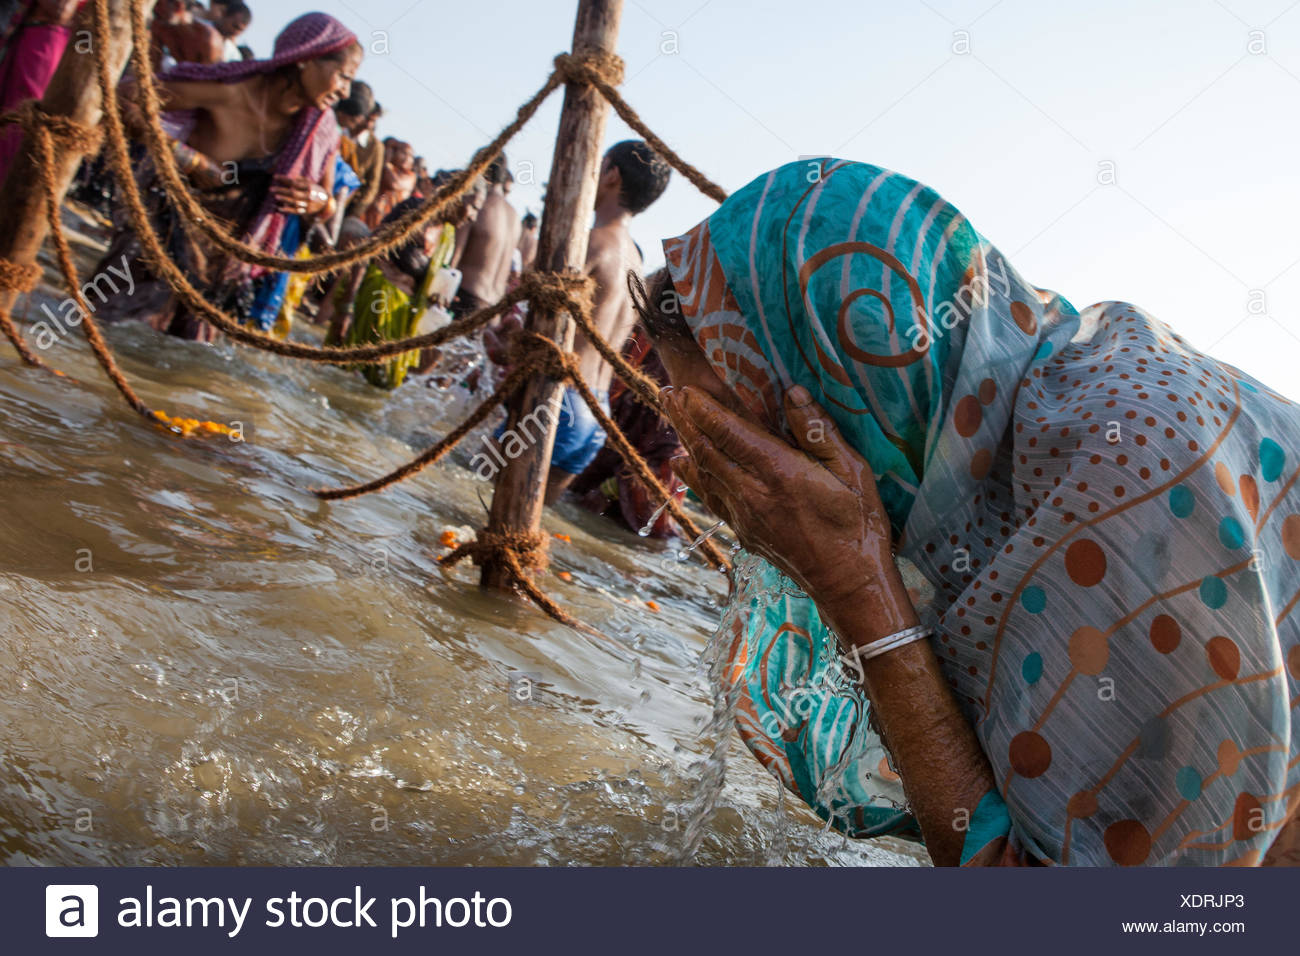 Pilgrims bathe in the Ganges River on the most auspicious day of the Kumbh Mela. - Stock Image